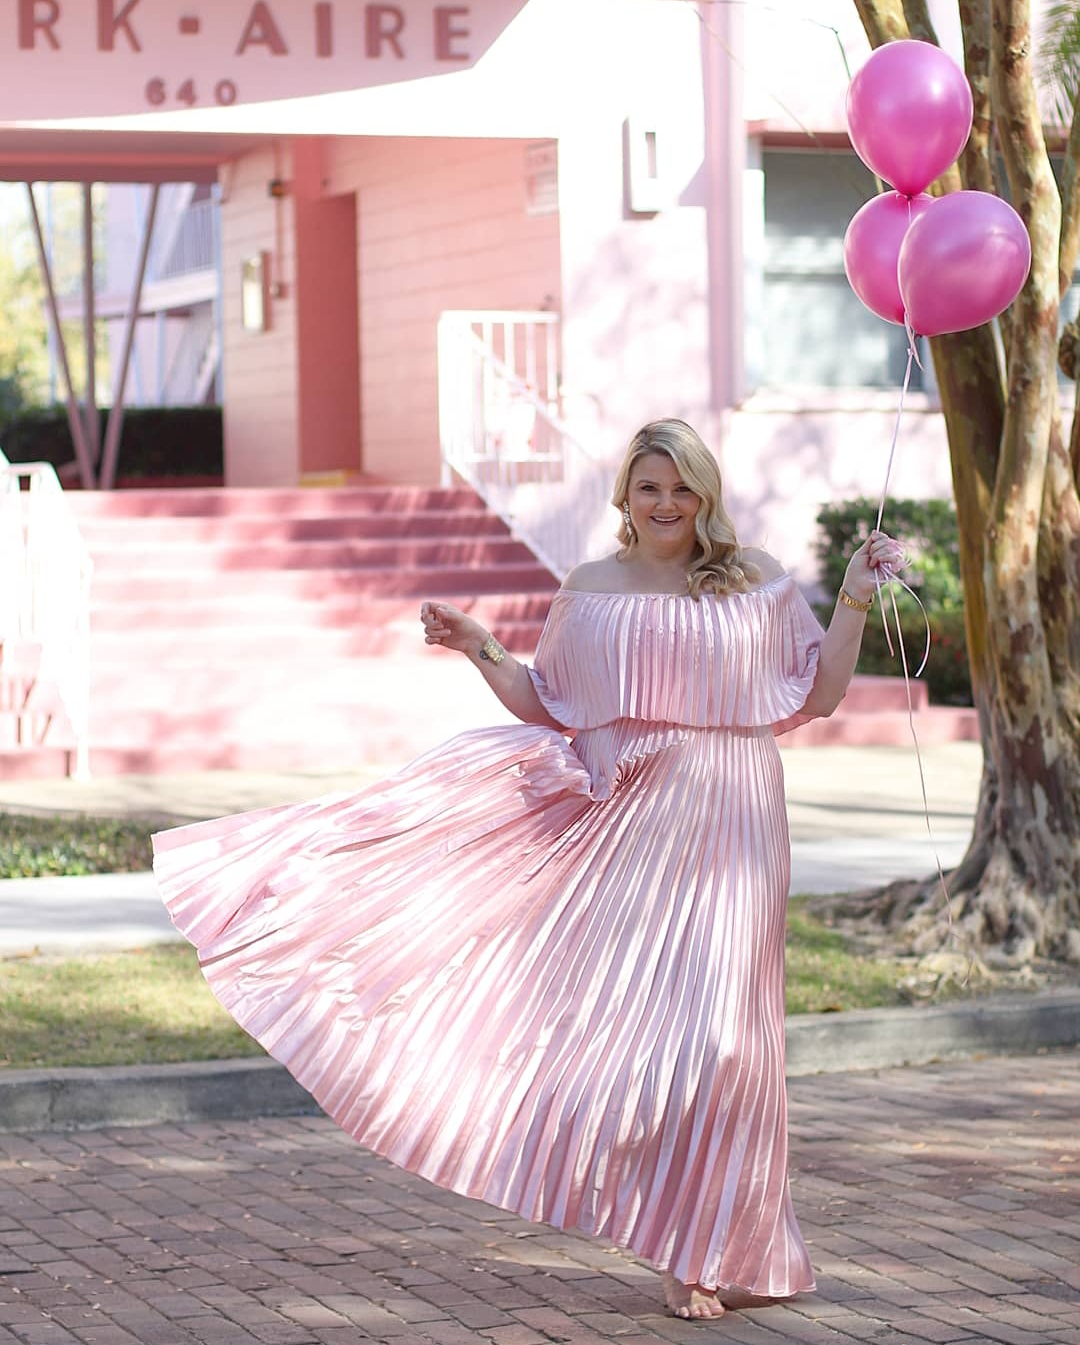 Orlando blogger Emily of Fabulously Overdressed shares 5 fun facts about herself and has a beauty giveaway for her 3rd blogiversary